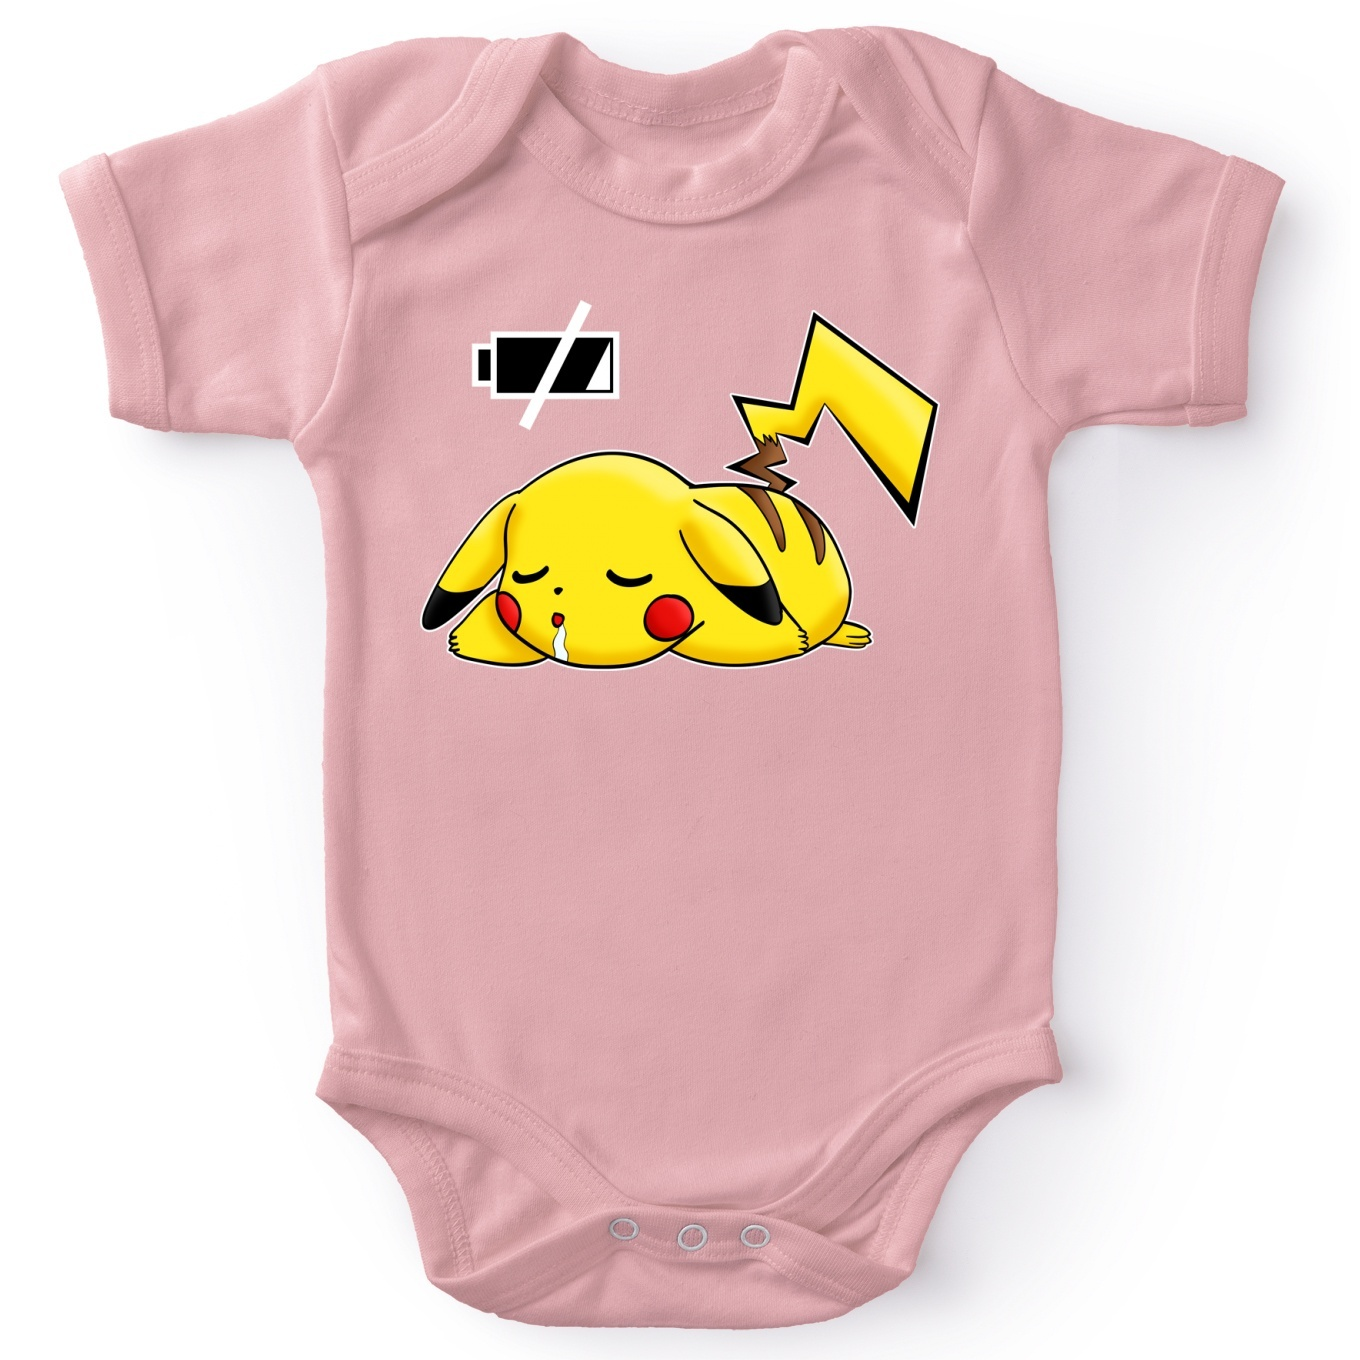 Short-sleeved baby bodysuit (Girls) Video Games Parodies